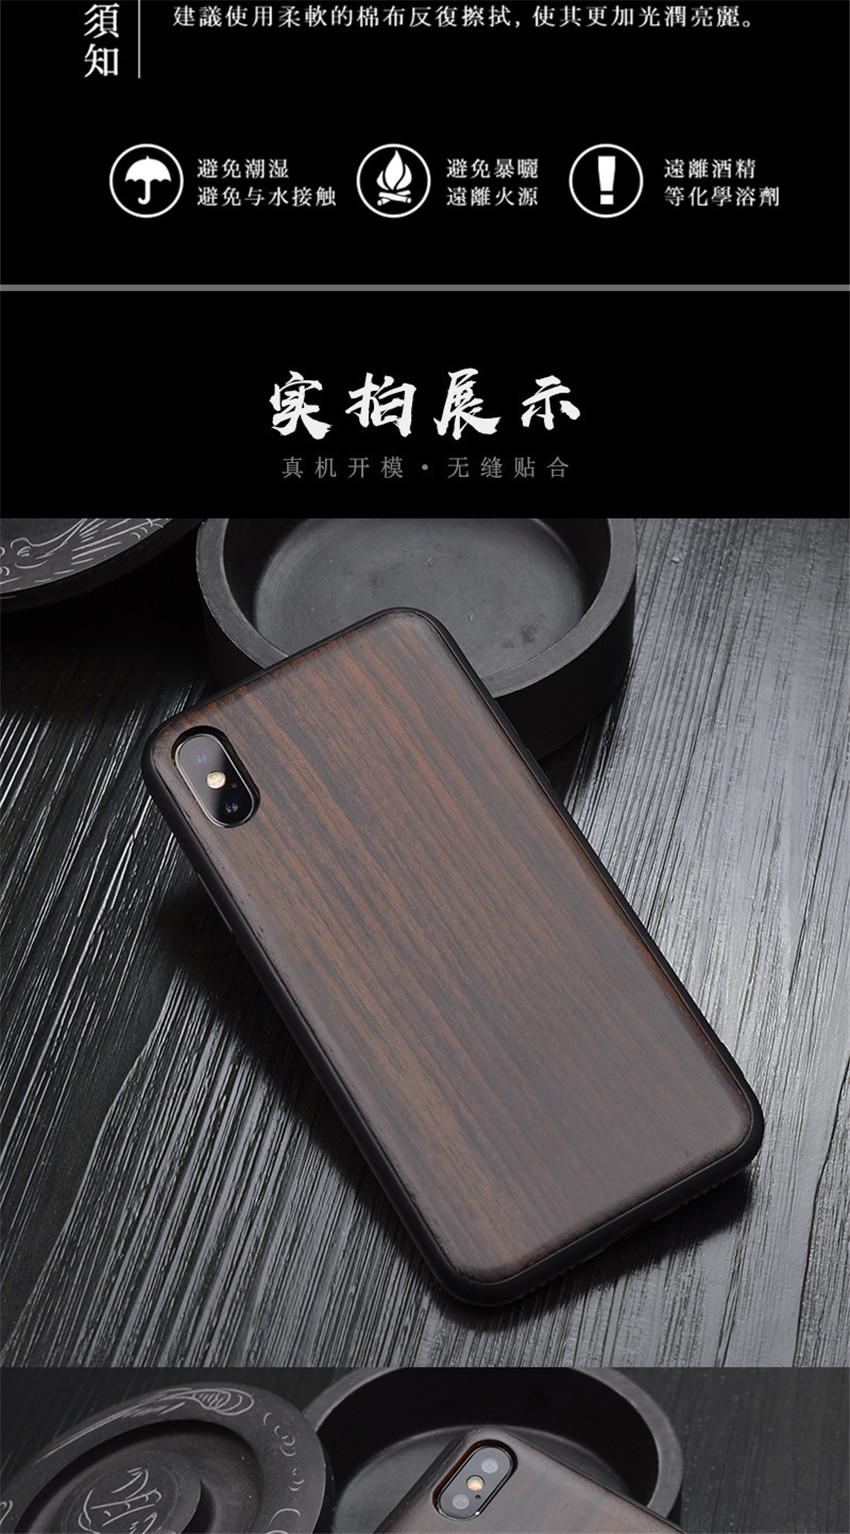 2018 New For iPhone XS Max Case Black Ebony Wood Cover For iPhone XS Carved TPU Bumper Wooden Case For iPhone X XR (8)